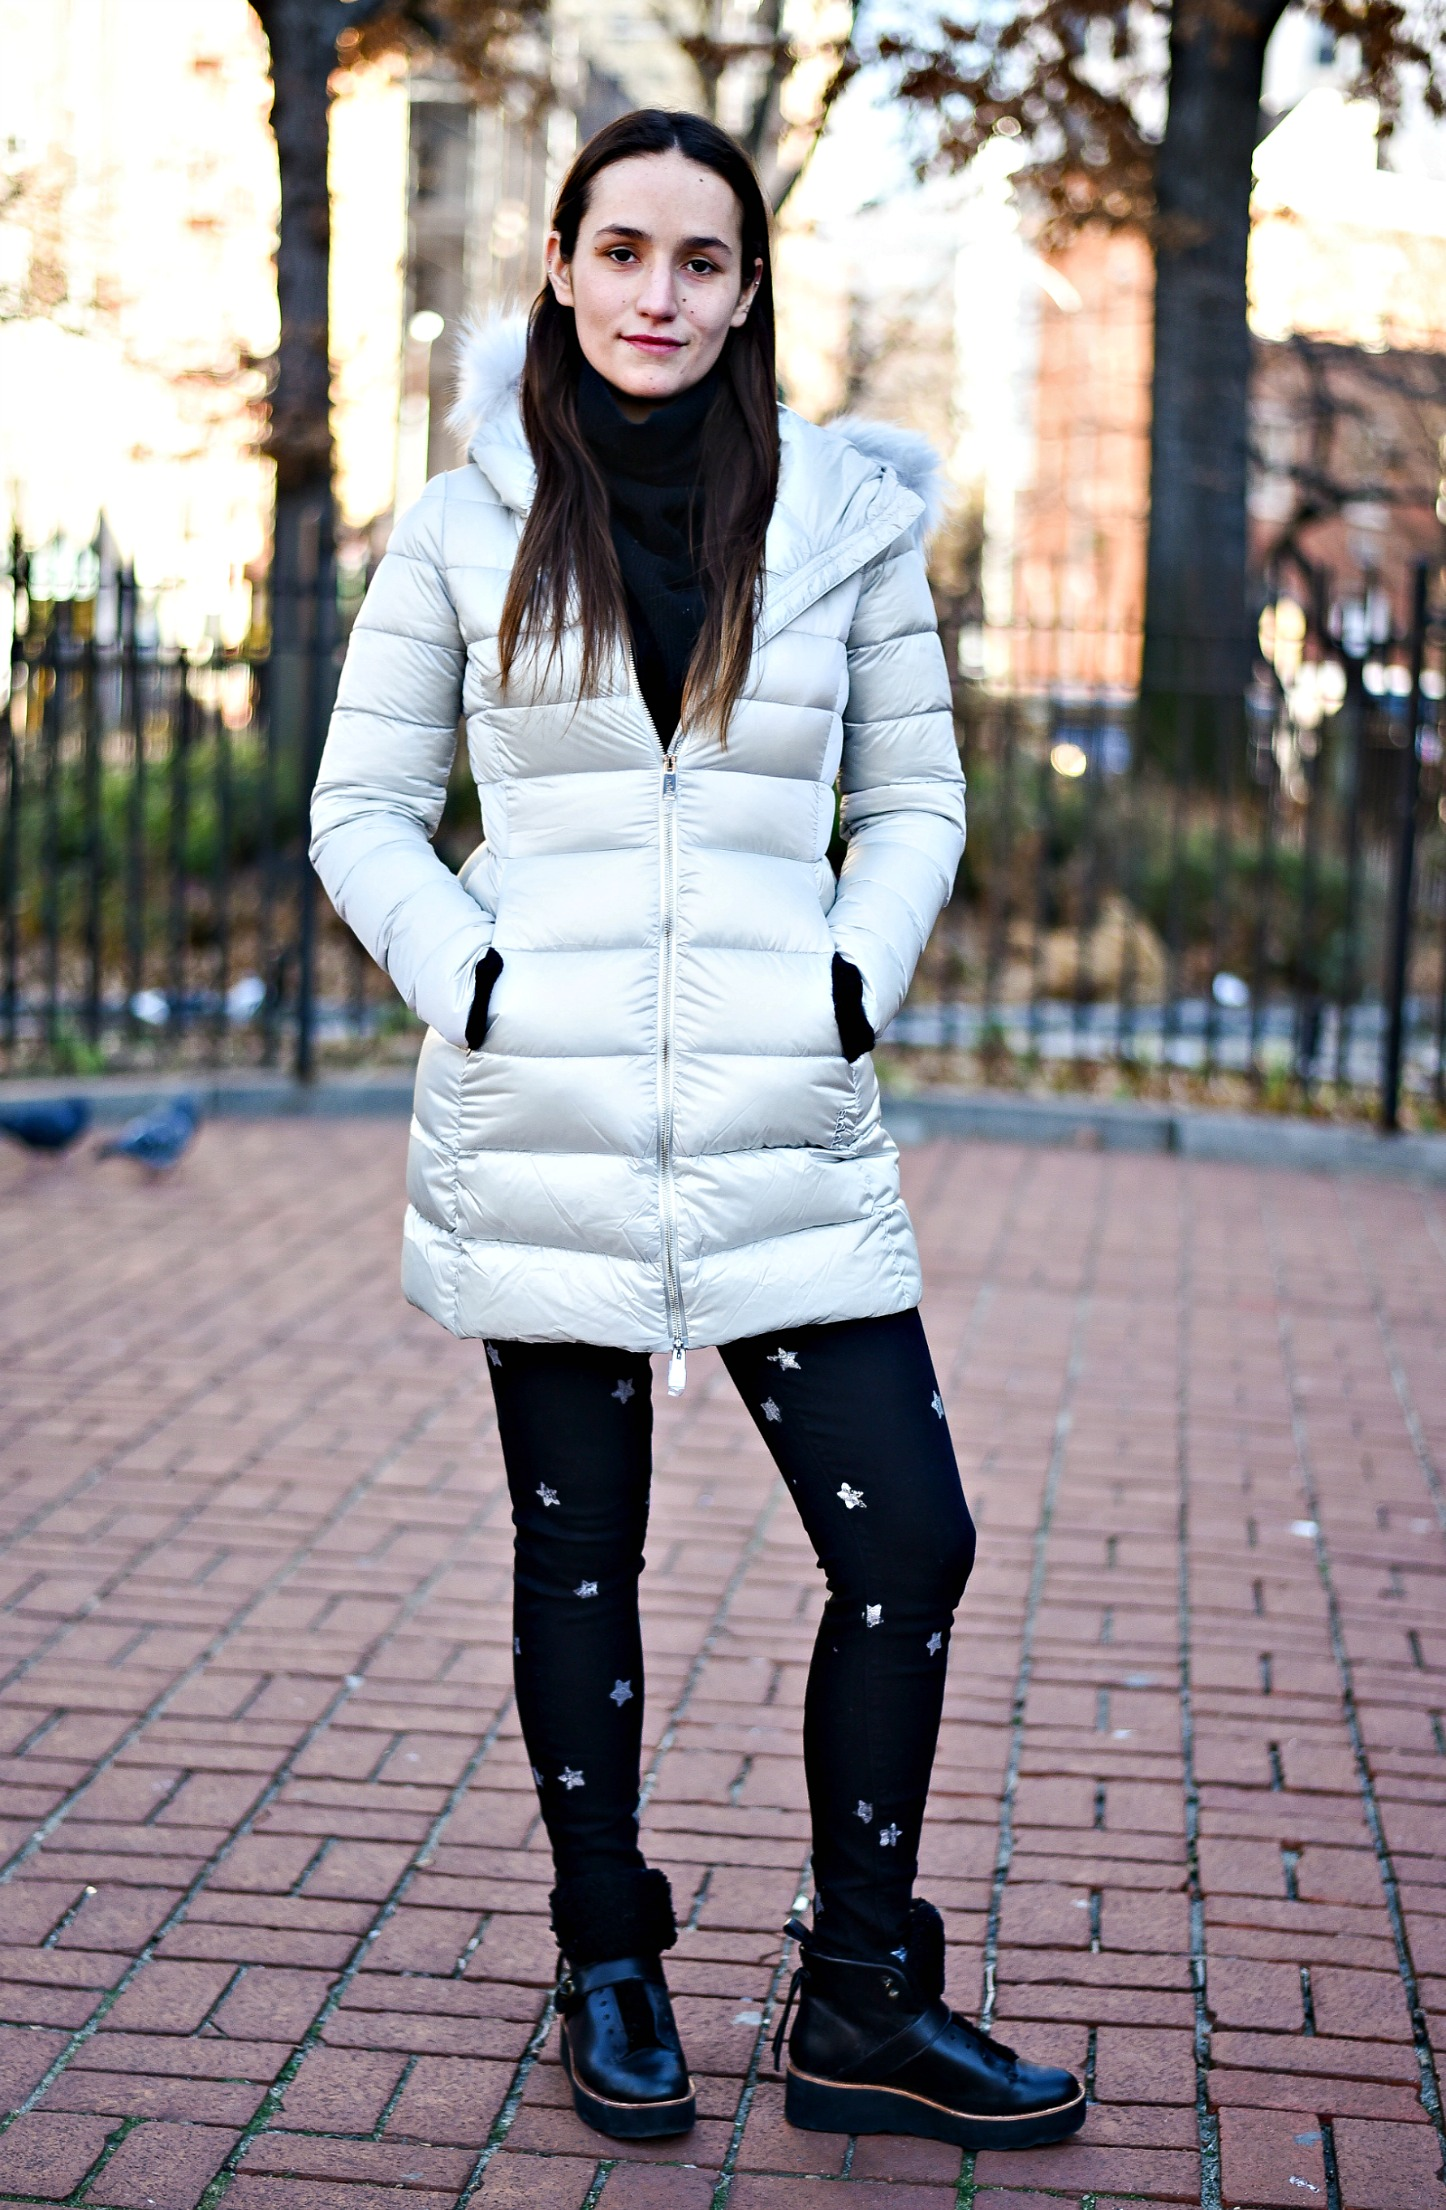 SOPHIE BICKLEY YIN 2MY YANG SISTER FASHION BLOGGERS NYC PUFFER JACKETS